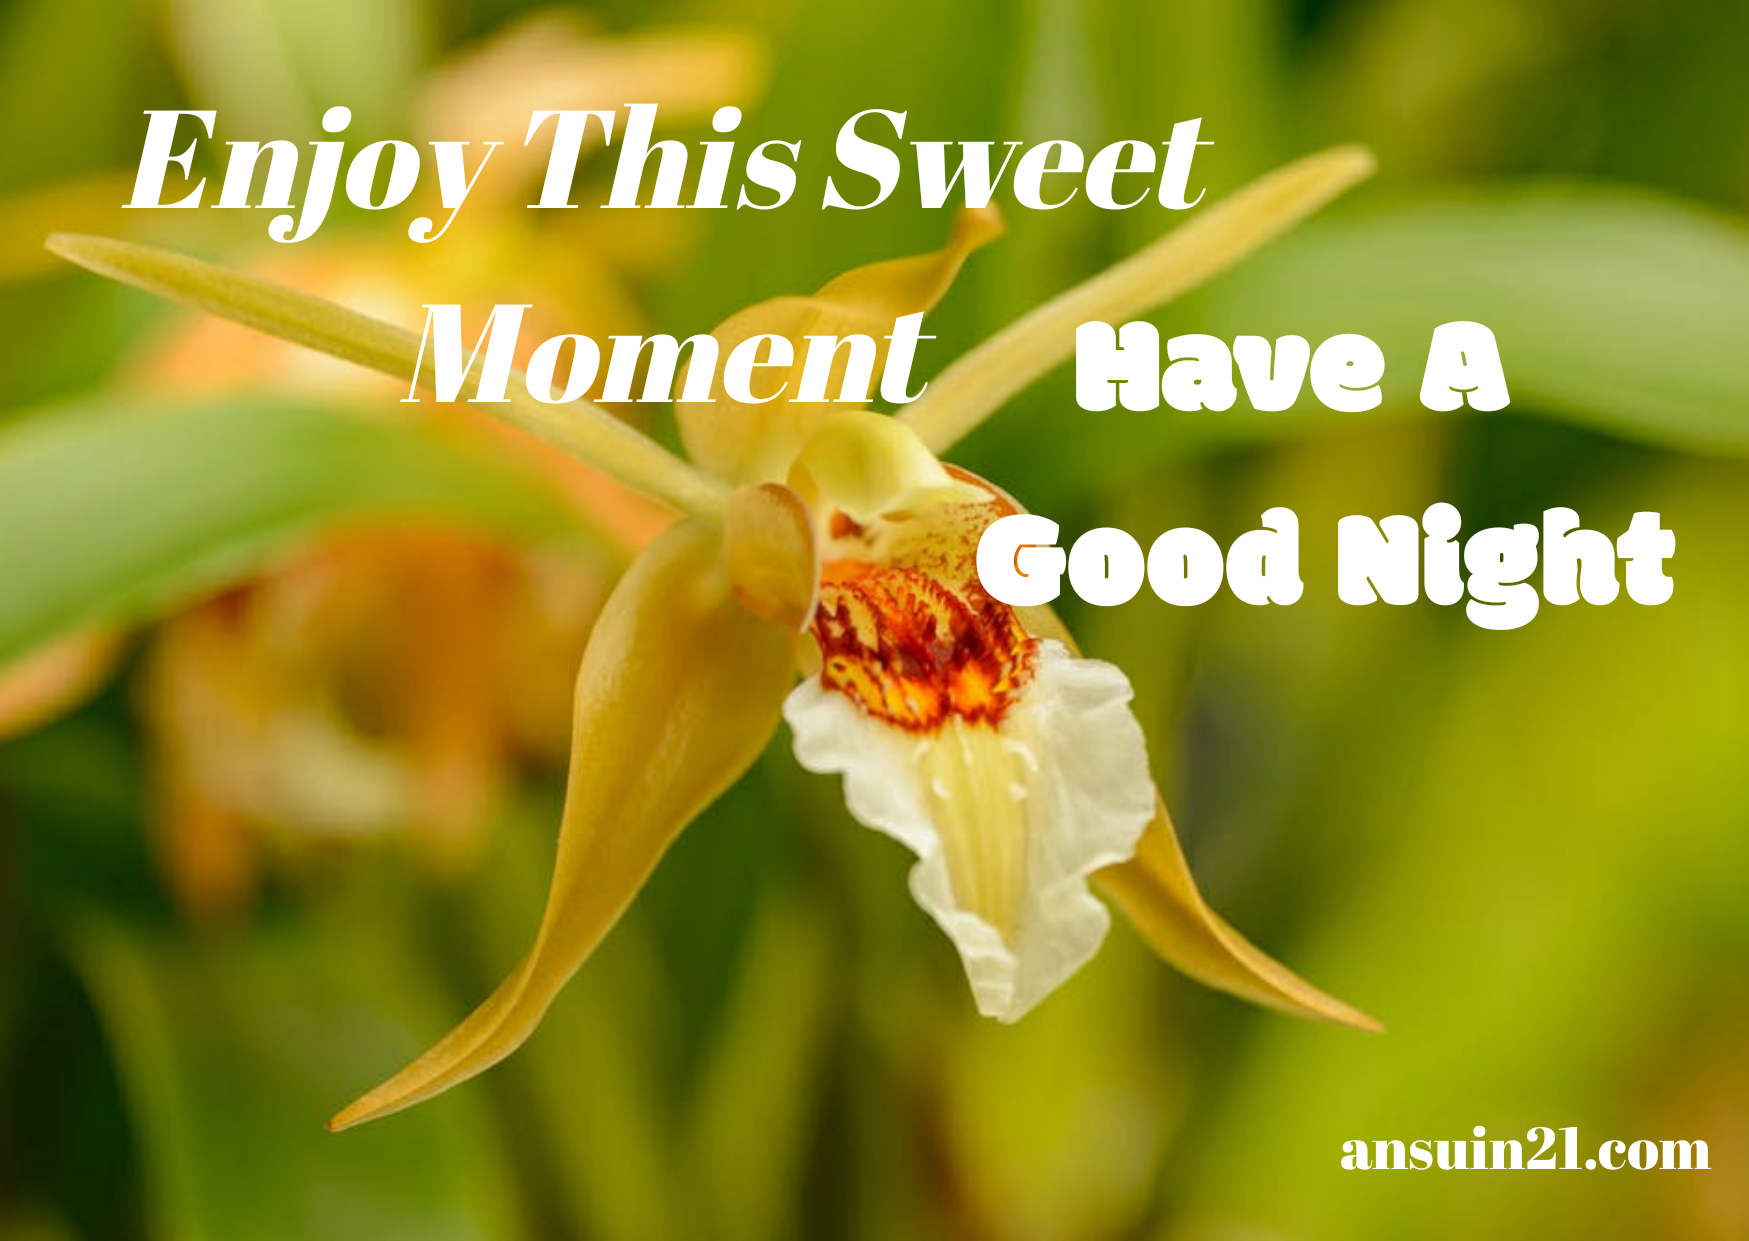 Good Night Images, Status, Wishes, Massage In English